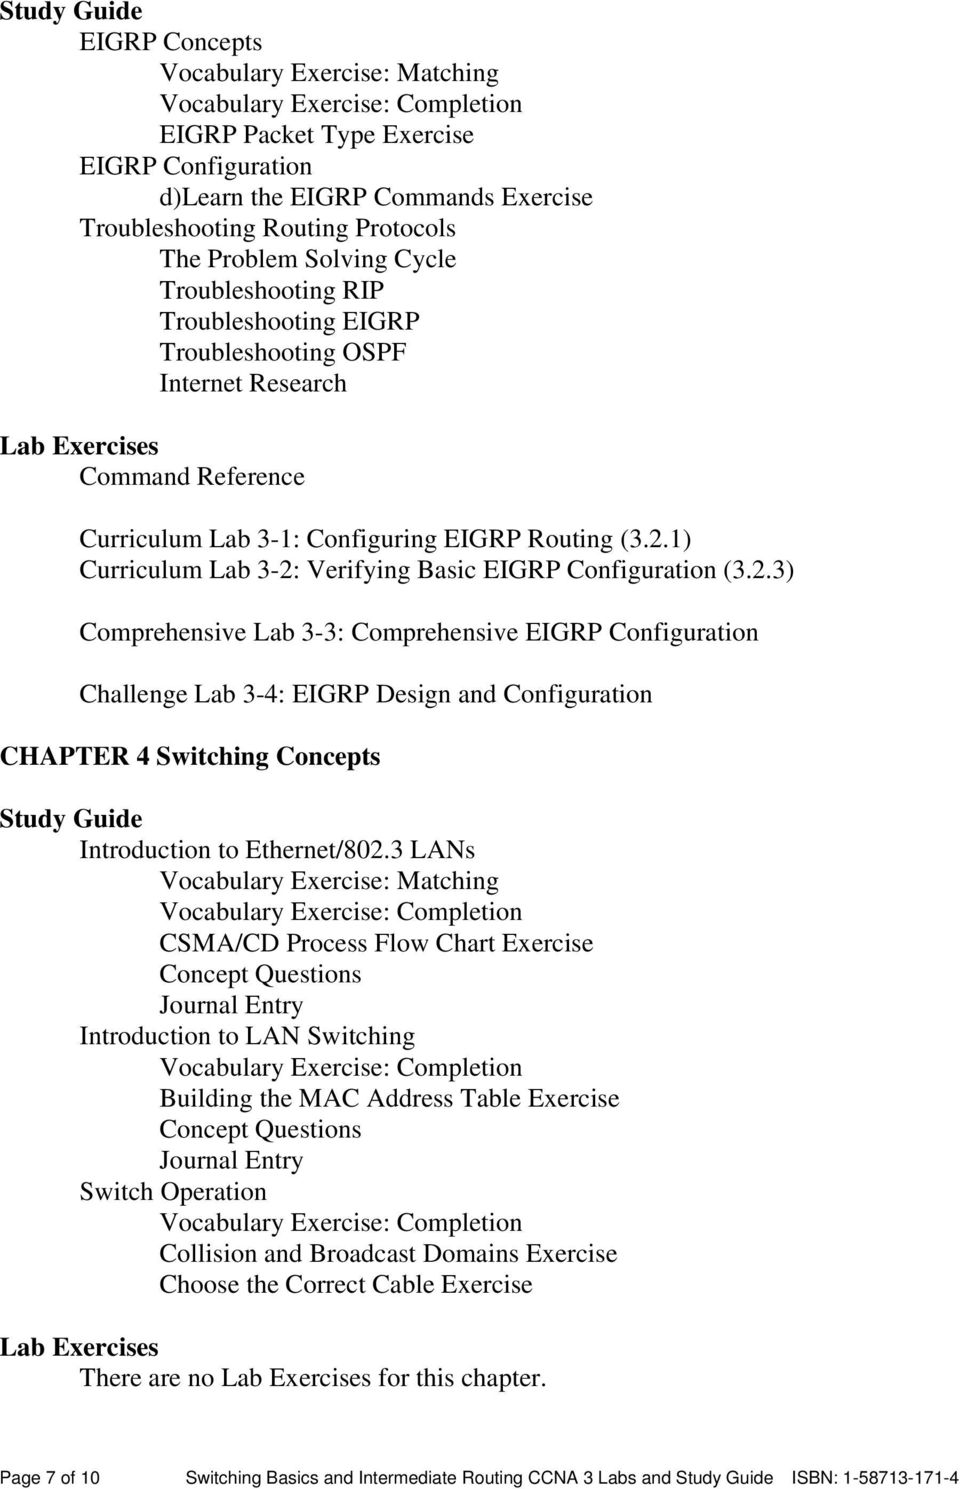 Switching Basics and Intermediate Routing CCNA 3 Labs and